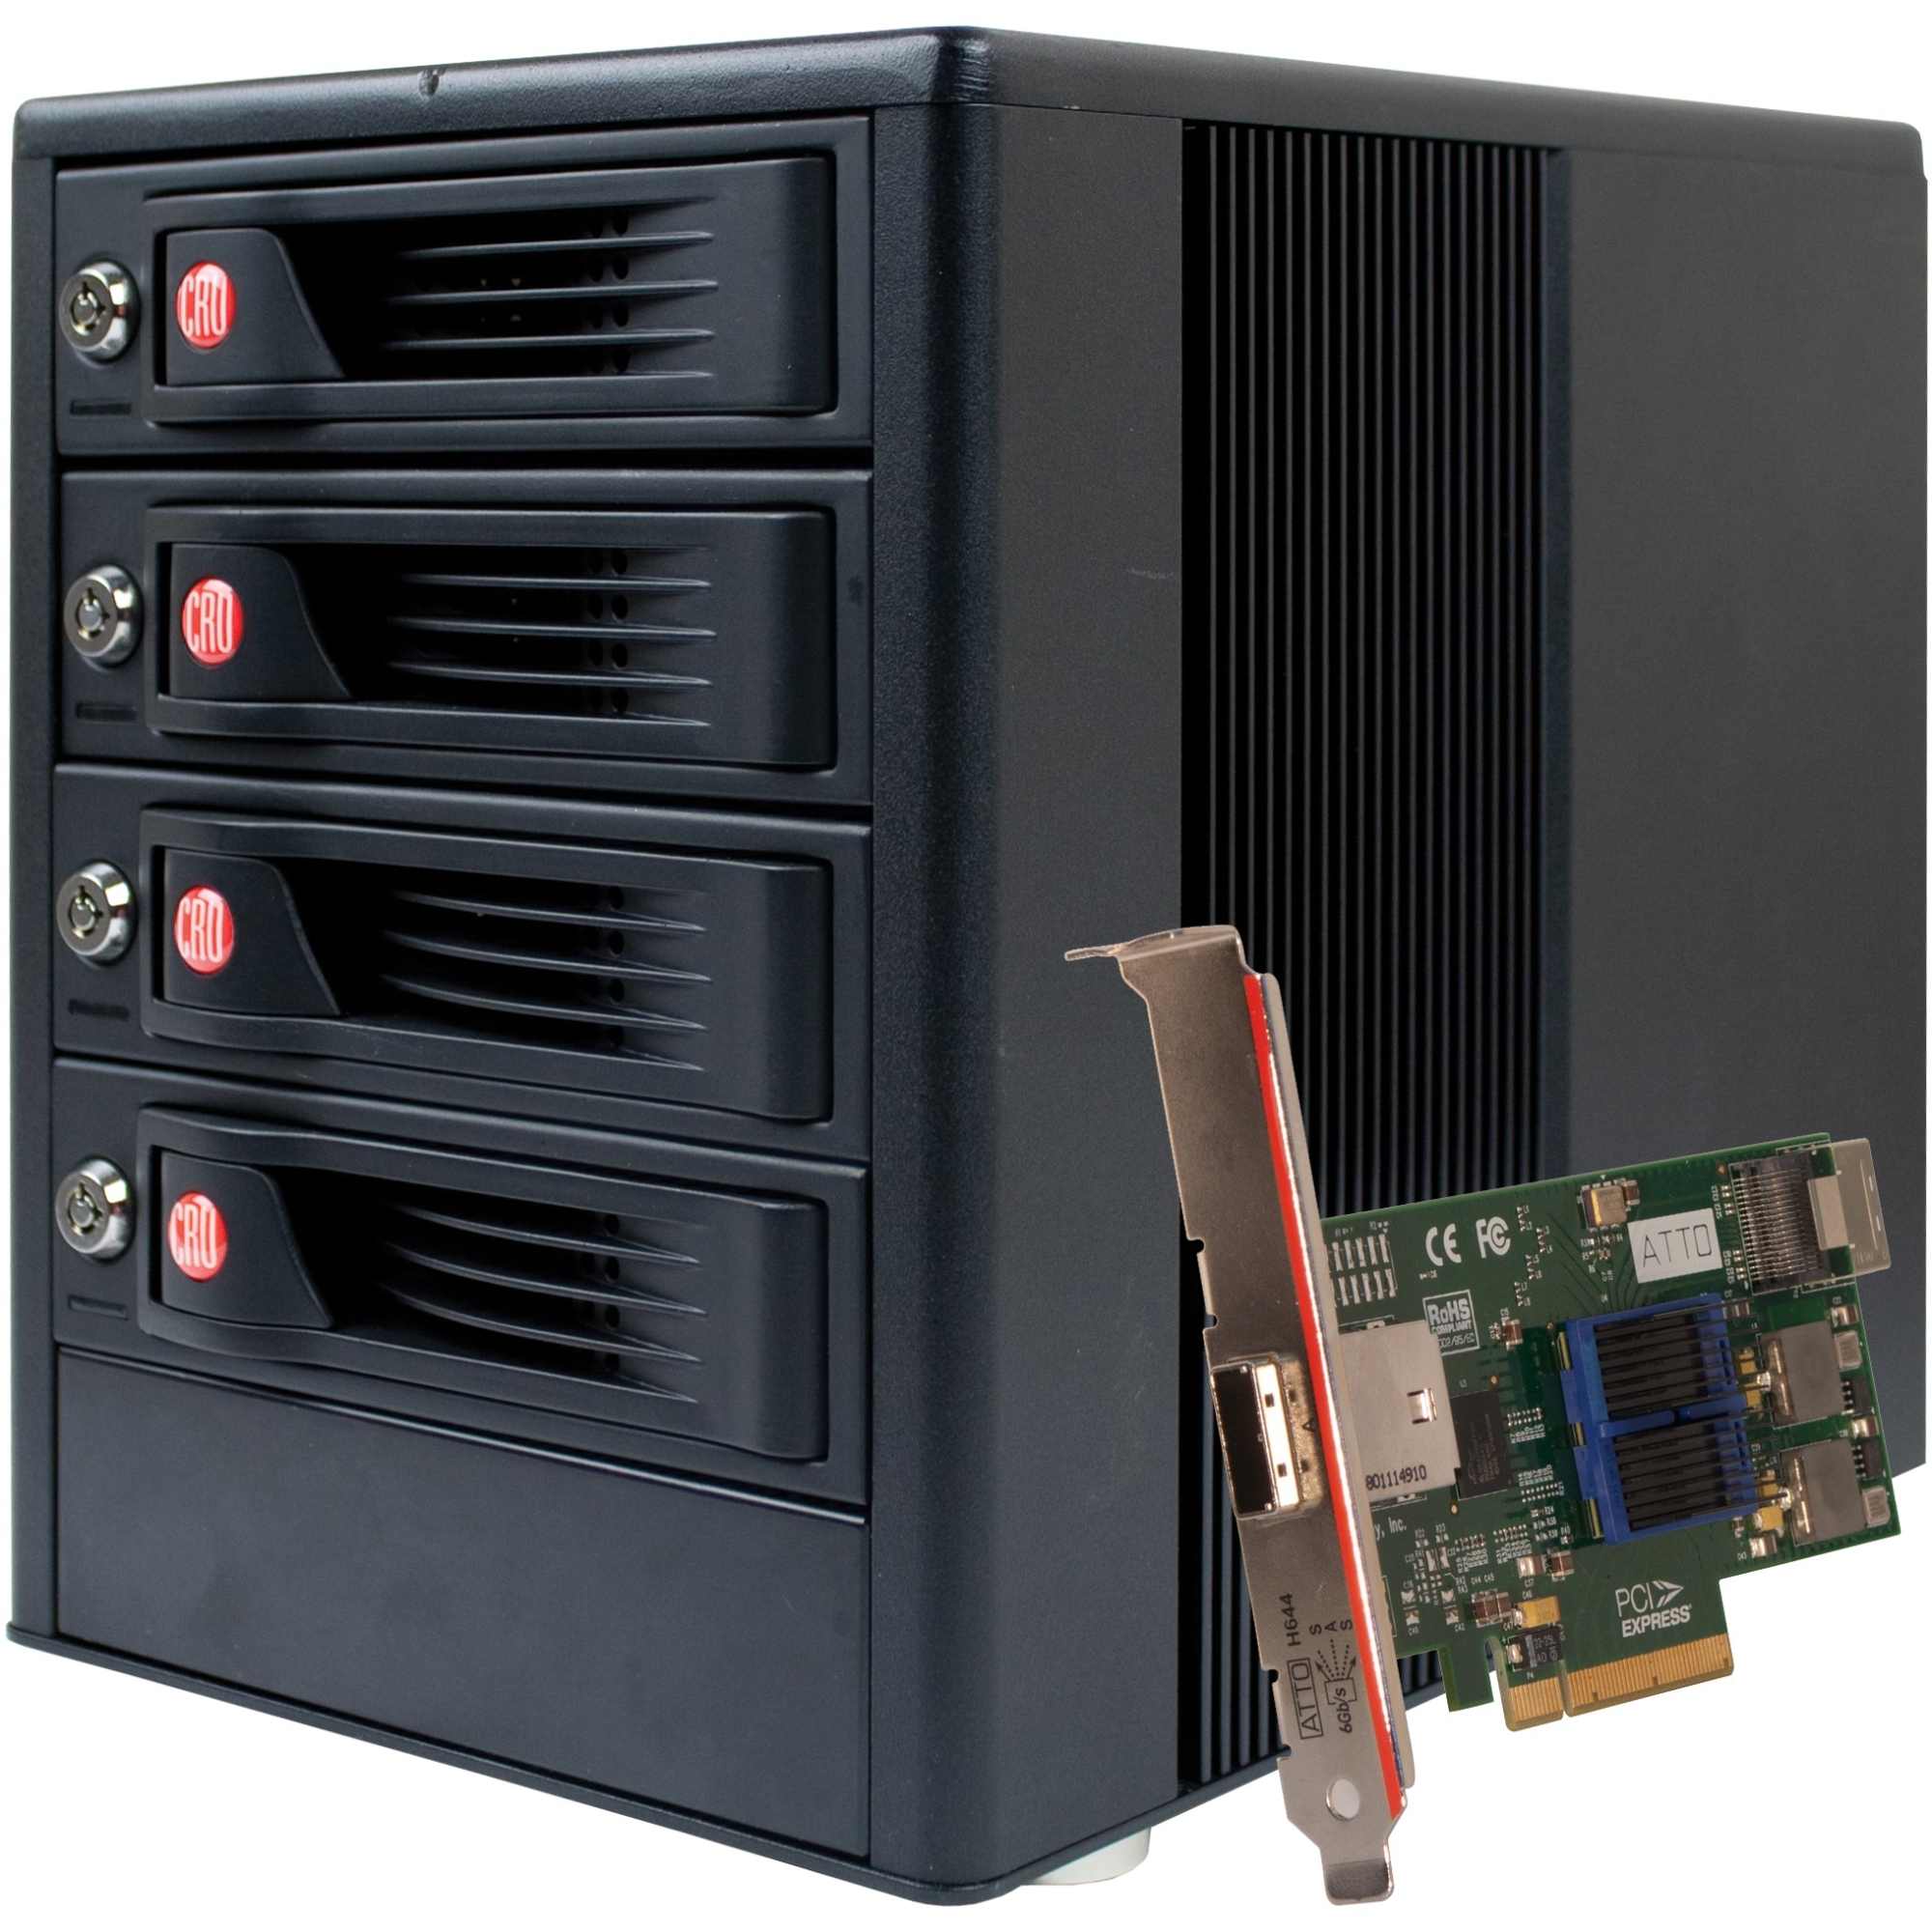 WiebeTech RTX RTX410-XJ Drive Enclosure Tower - 4 x HDD Supported - Serial ATA/600 Controller - 4 x Total Bay - 4 x 3.5 inch Bay - Mini-SAS - Cooling Fan